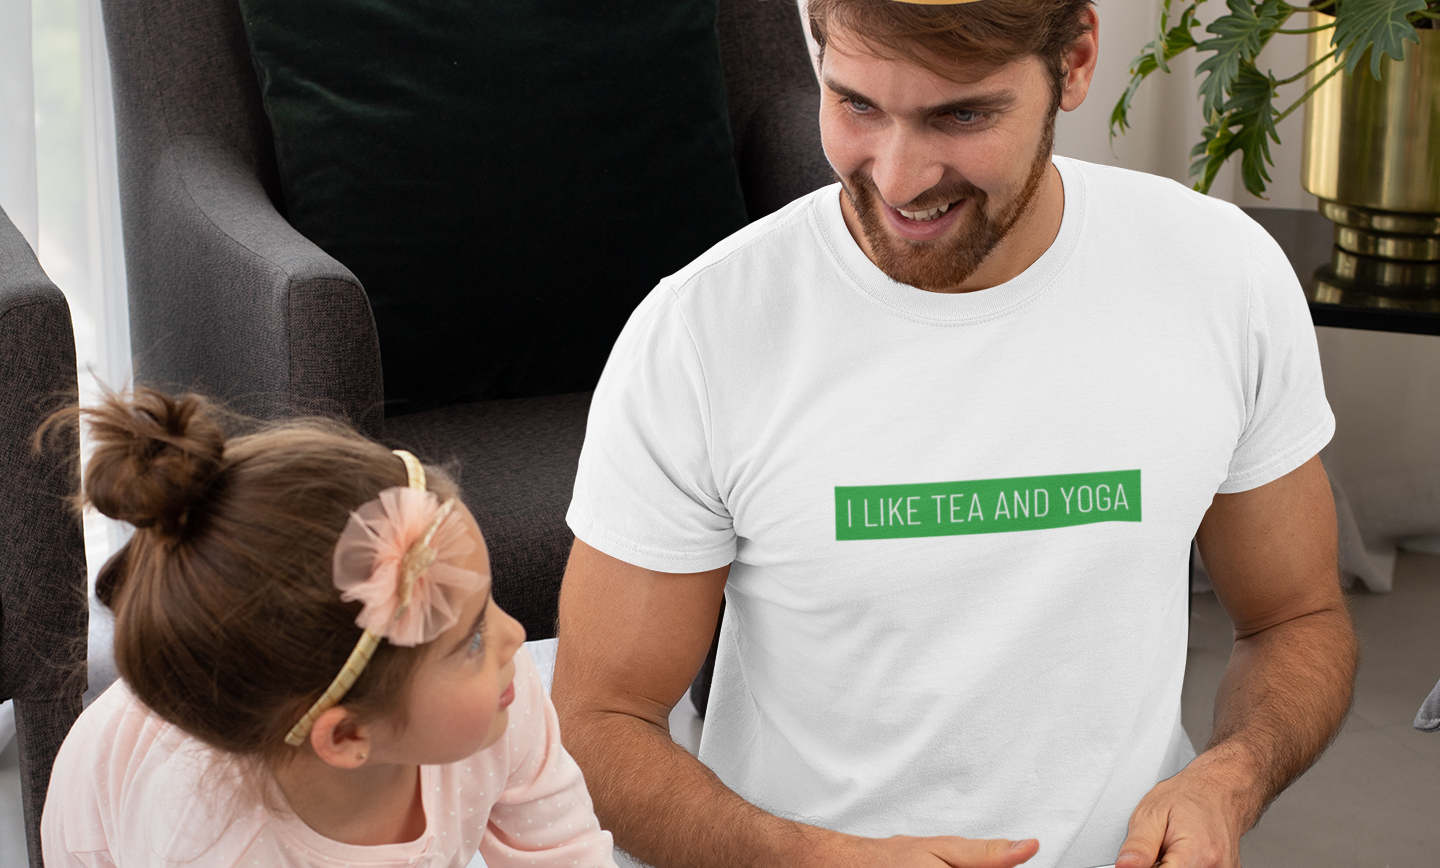 I like tea and yoga tshirt